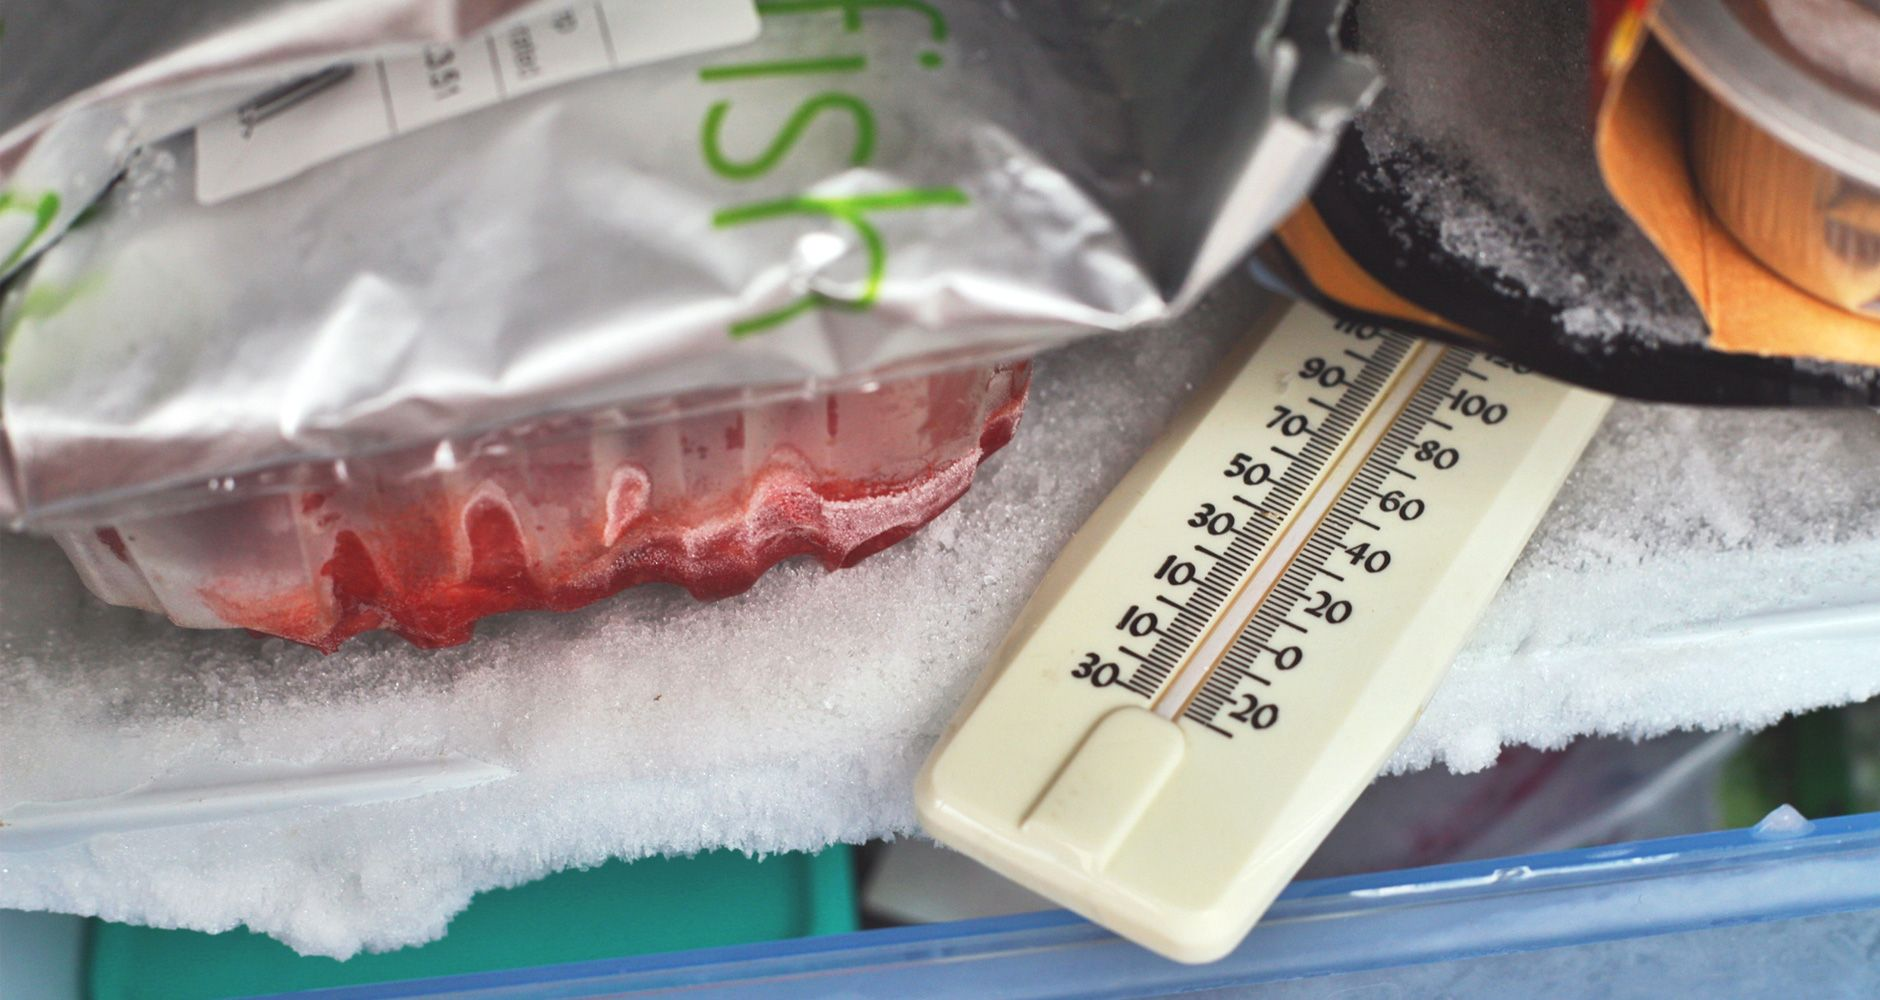 7 tips for freezing food the right way food freezer